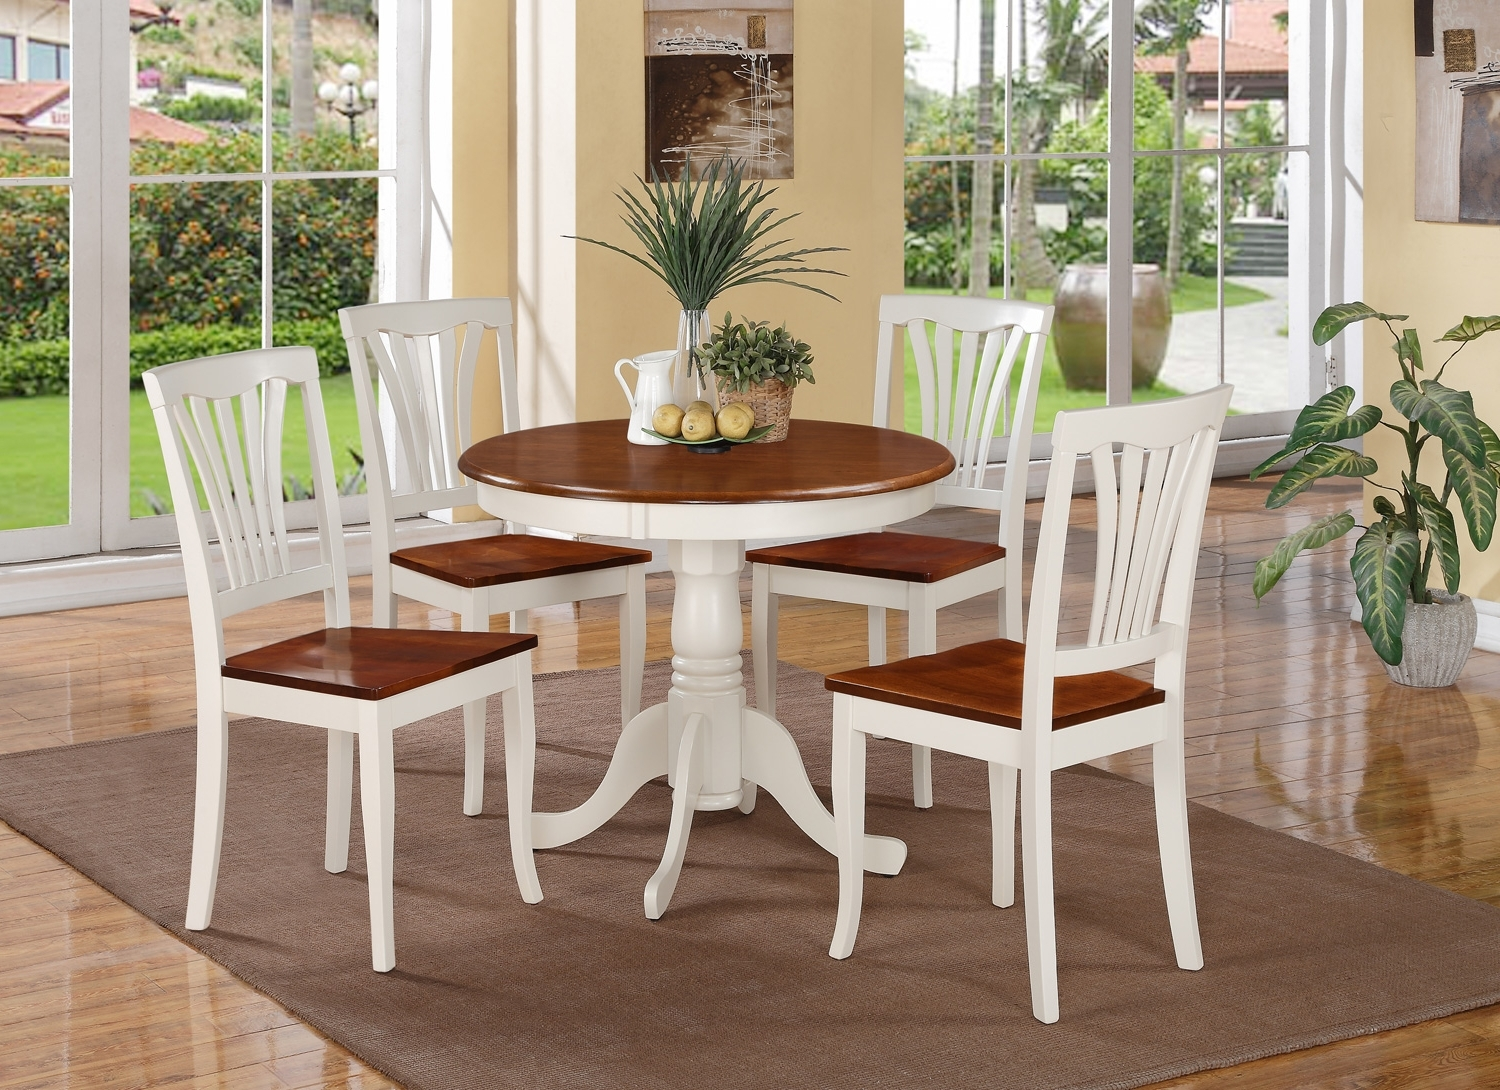 Most Up To Date Circular Dining Tables For 4 In Dining Tables (View 14 of 25)